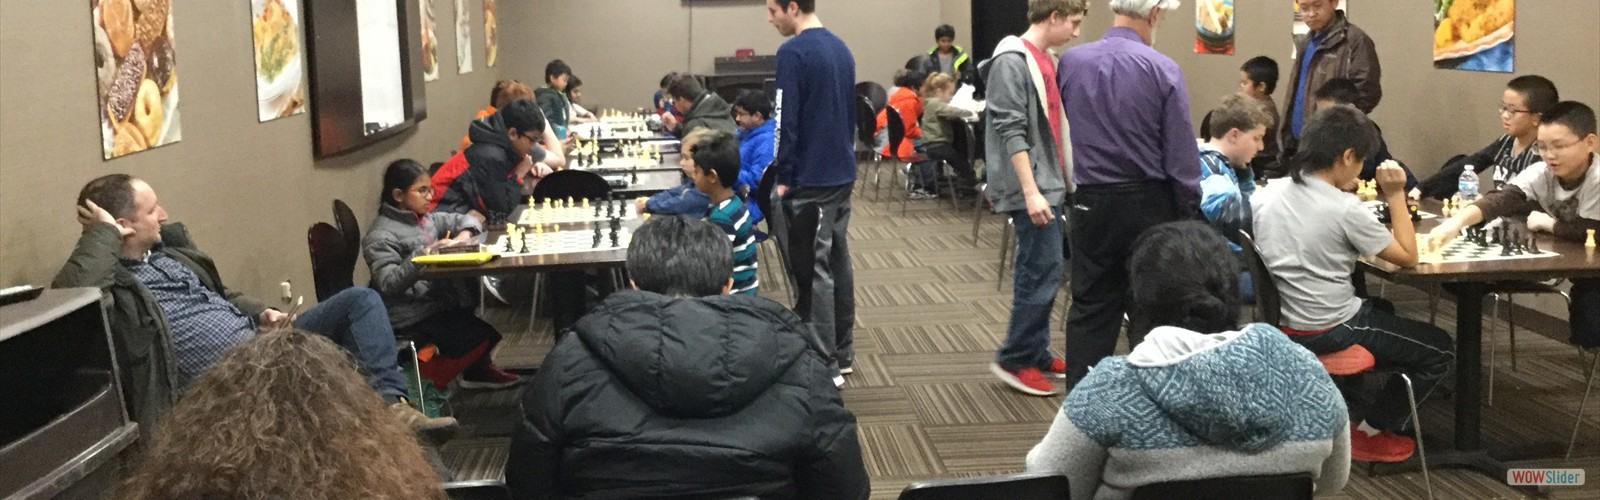 Hult Youth Chess Club meets Fridays 6:30-8:30pm at Schnucks Market on University & Glen